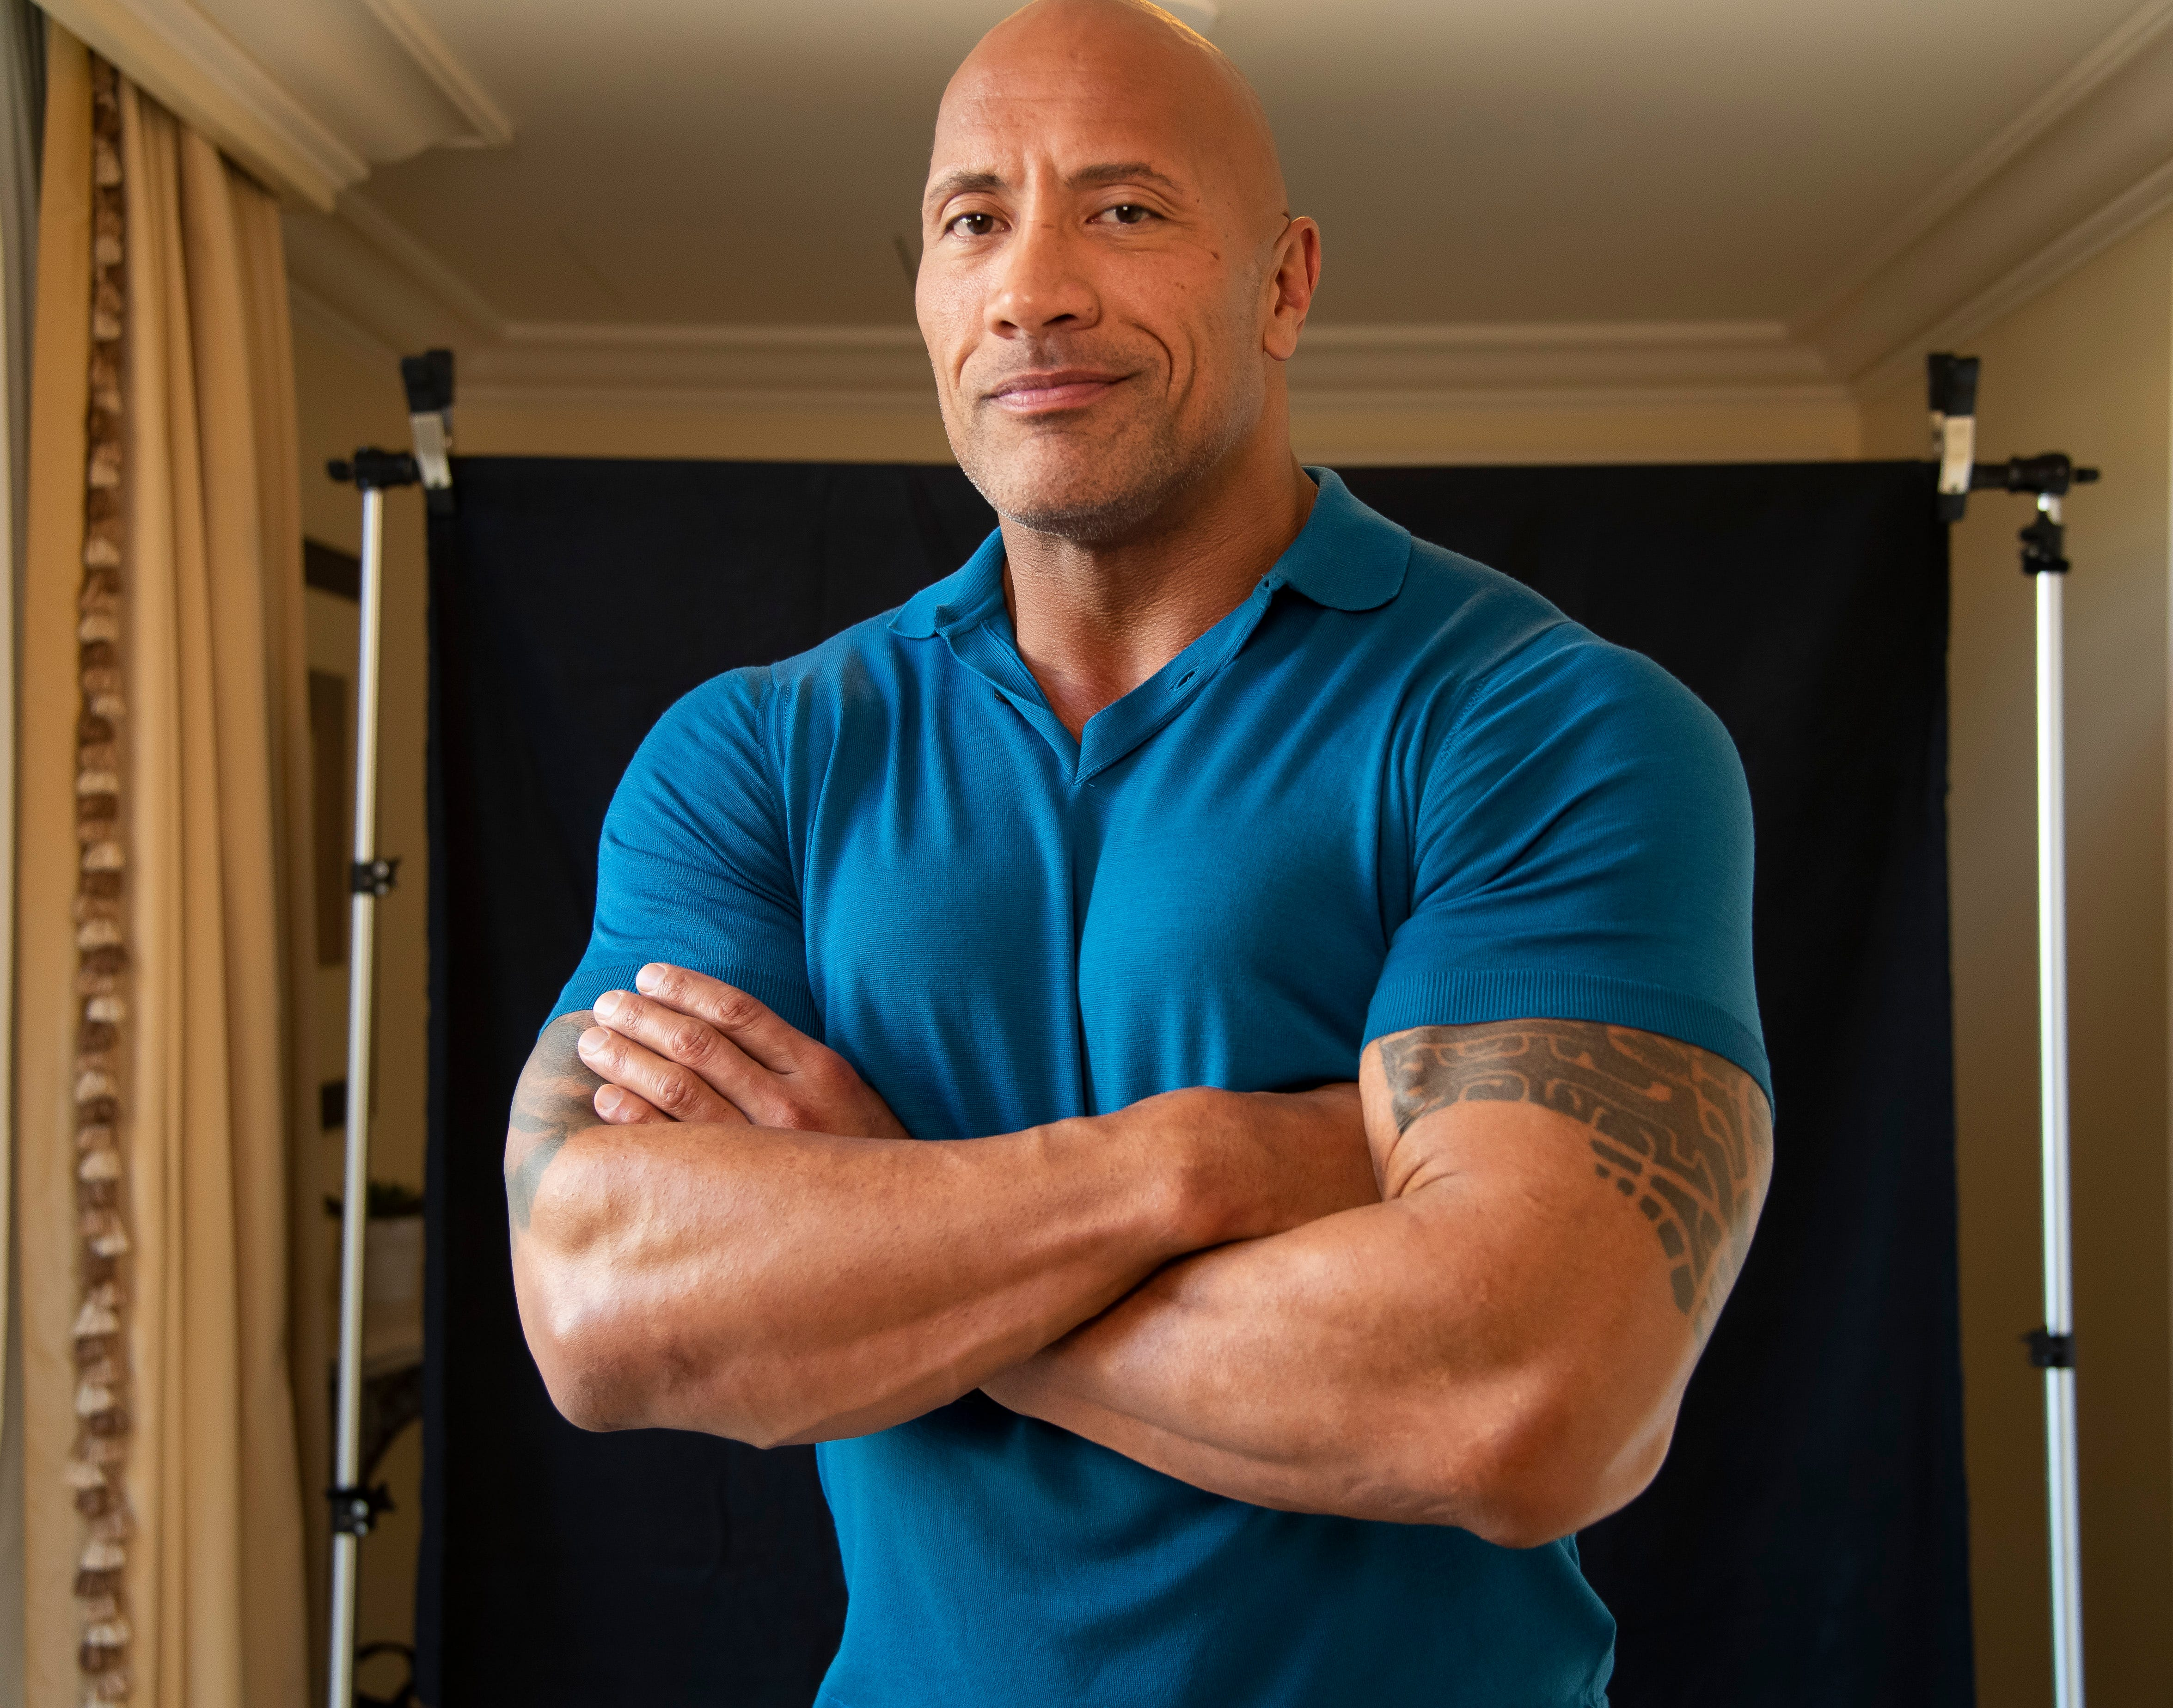 Dwayne Johnson His Early Life Story Told In Nbc Comedy Young Rock